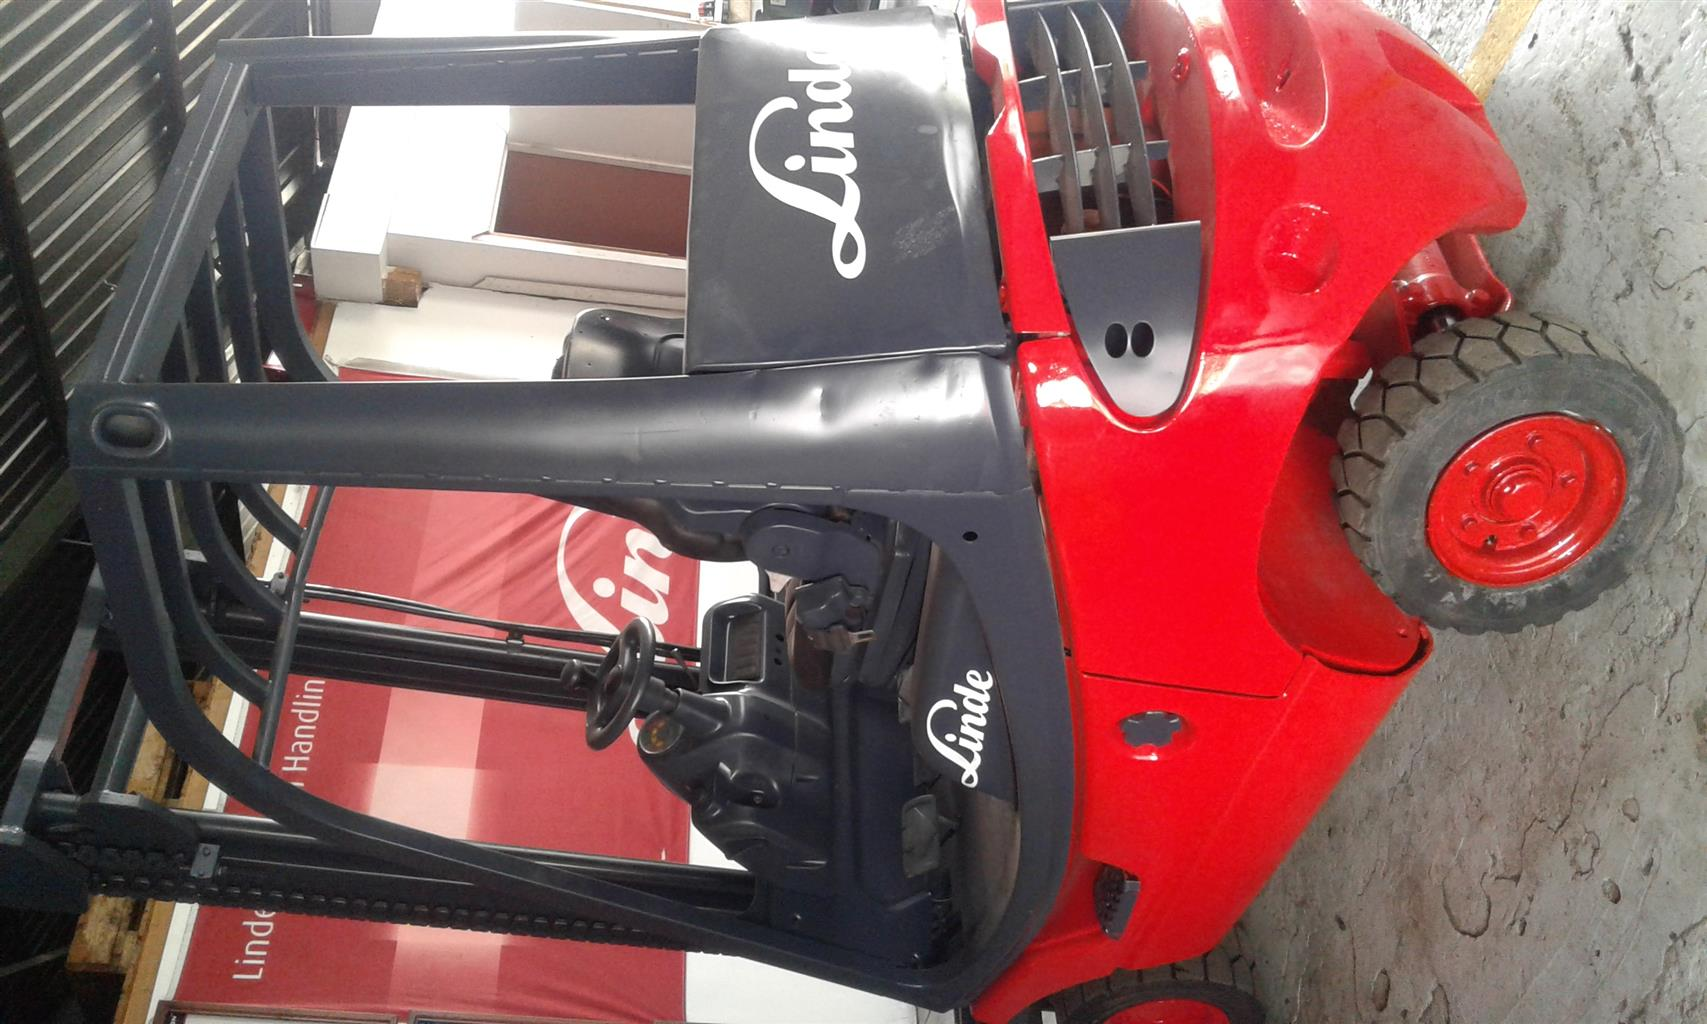 LINDE 1.6 & 1.8 TON FORKLIFTS FOR SALE - GOOD CONDITION